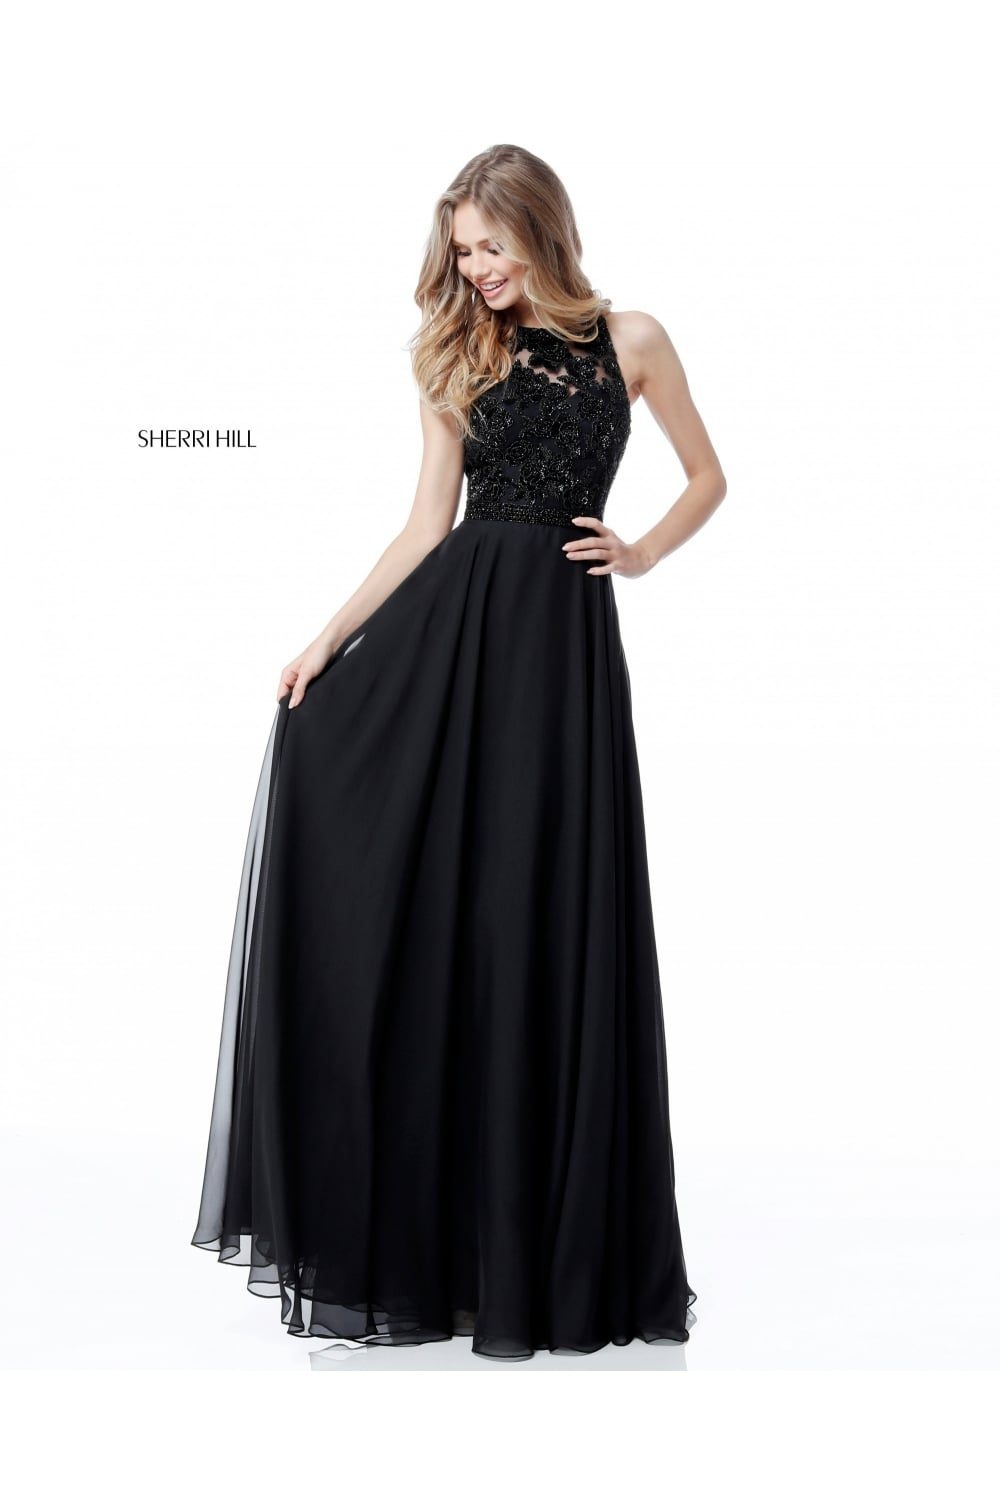 Sherri Hill 51694 Prom Dress